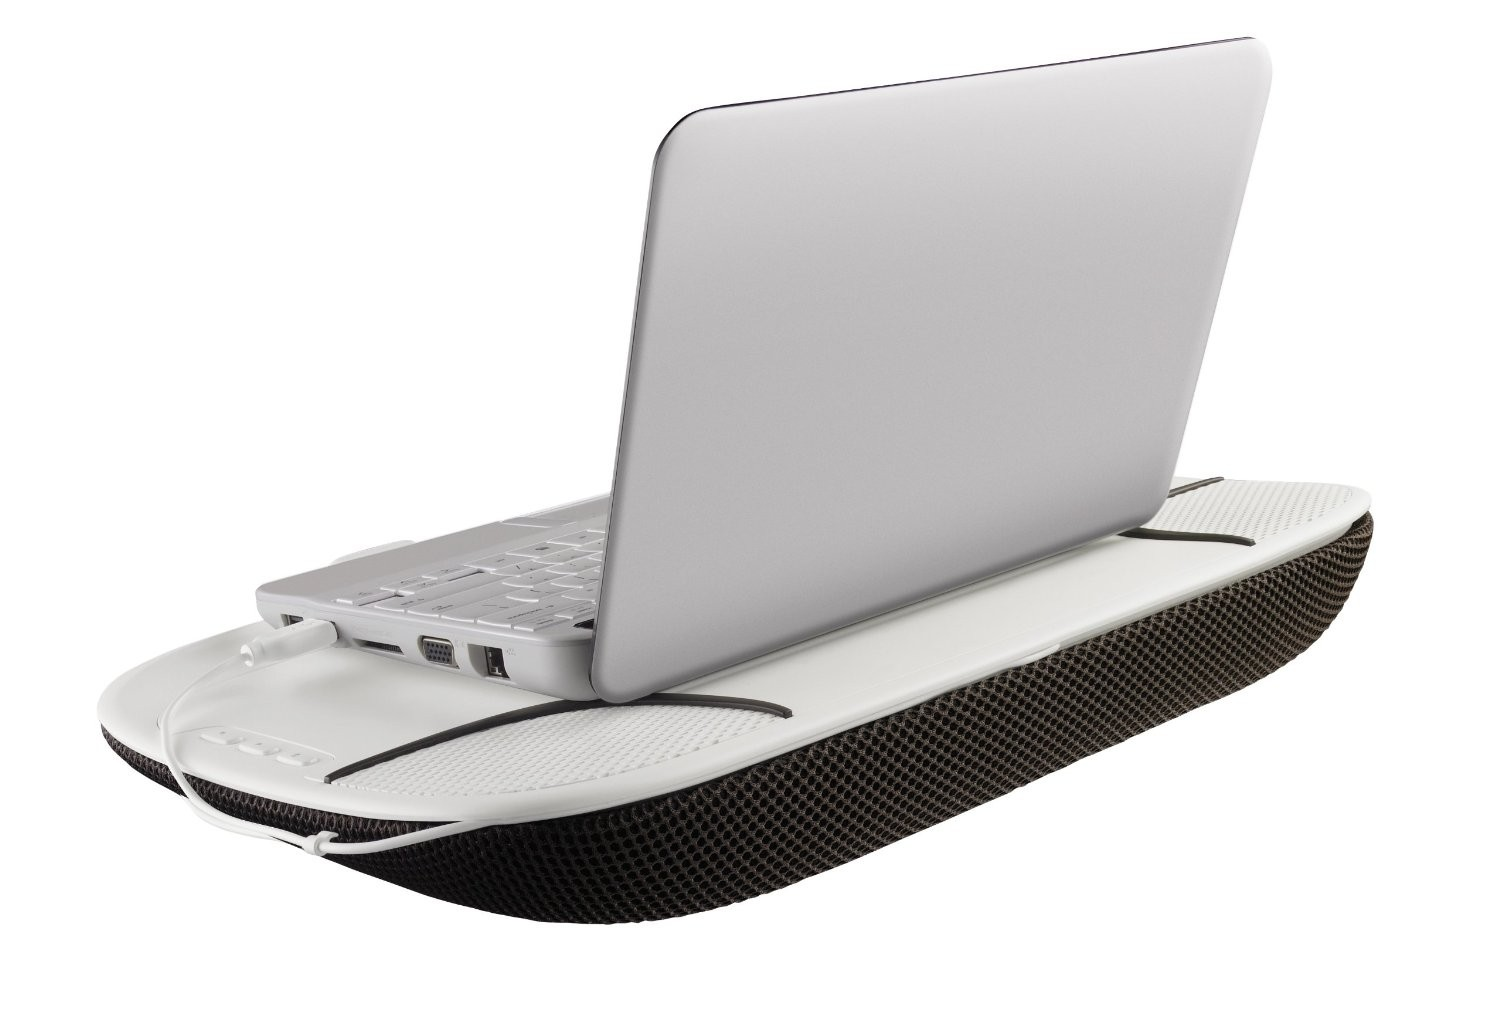 35a056c520f Logitech N550 Speaker Lapdesk - Plug-and-play Usb Connection ...